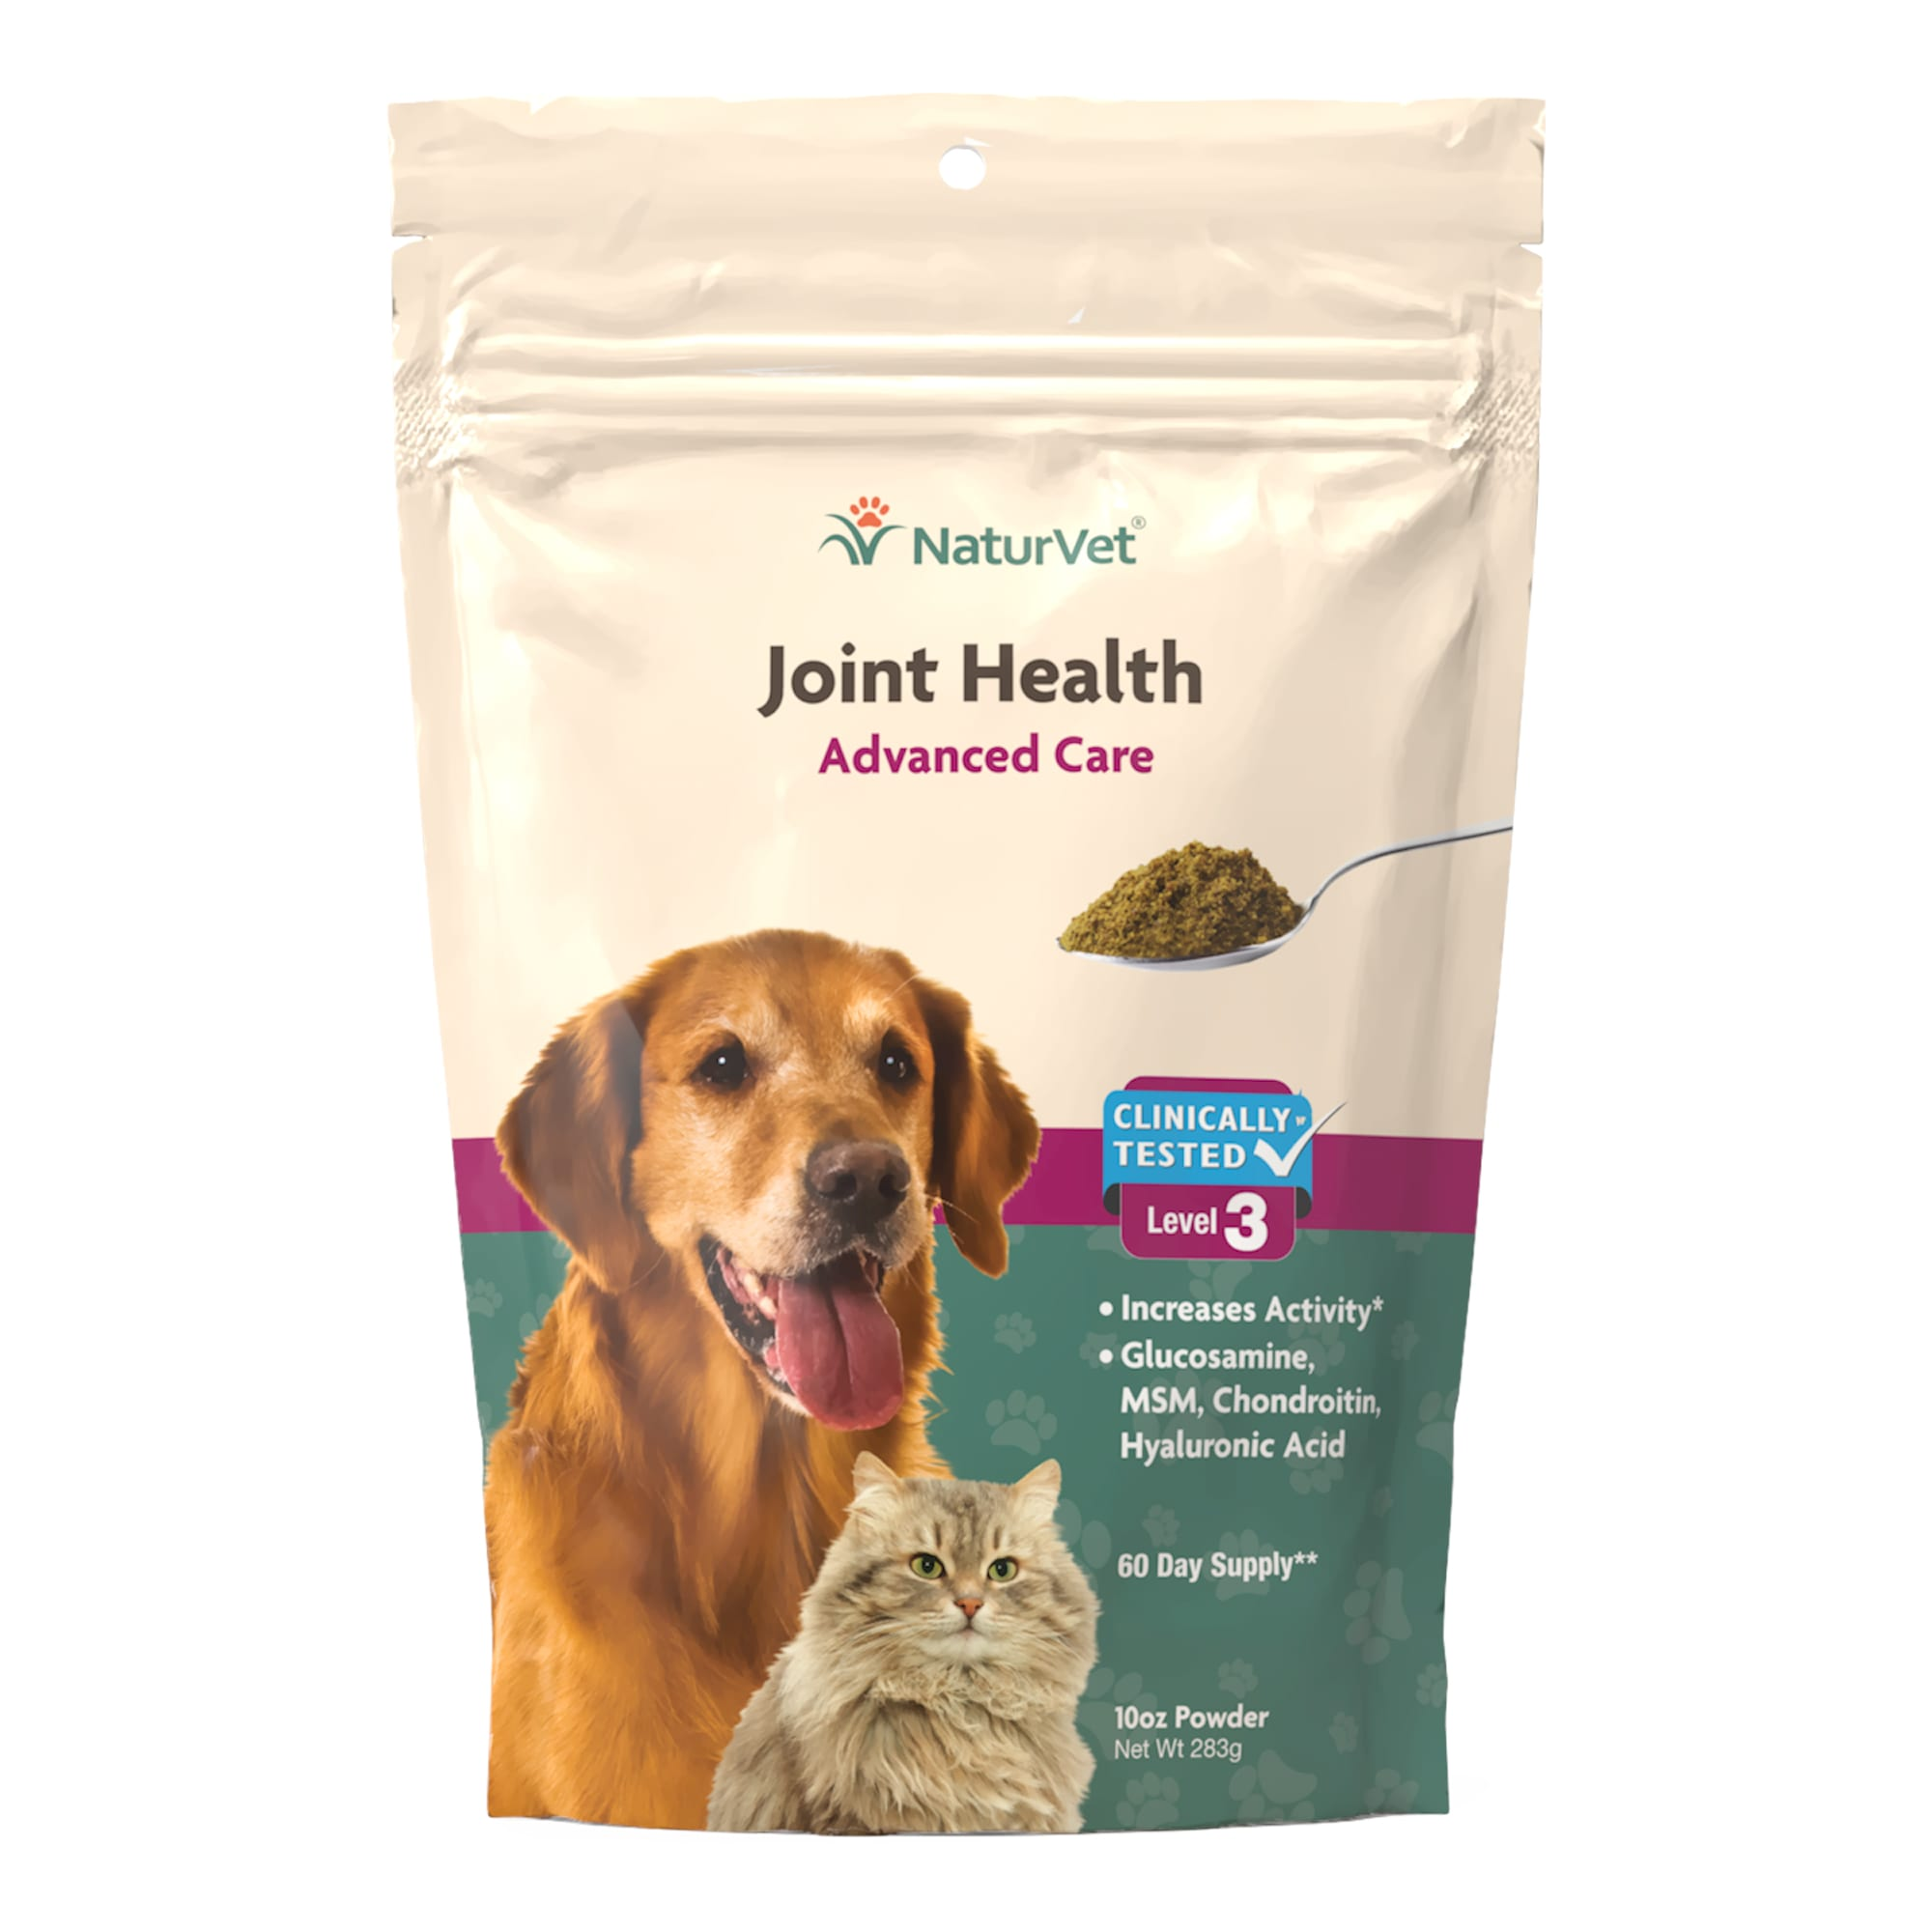 NaturVet Naturals Joint Health Level 3 Dog & Cat Advanced Joint Support Supplement, 10 OZ